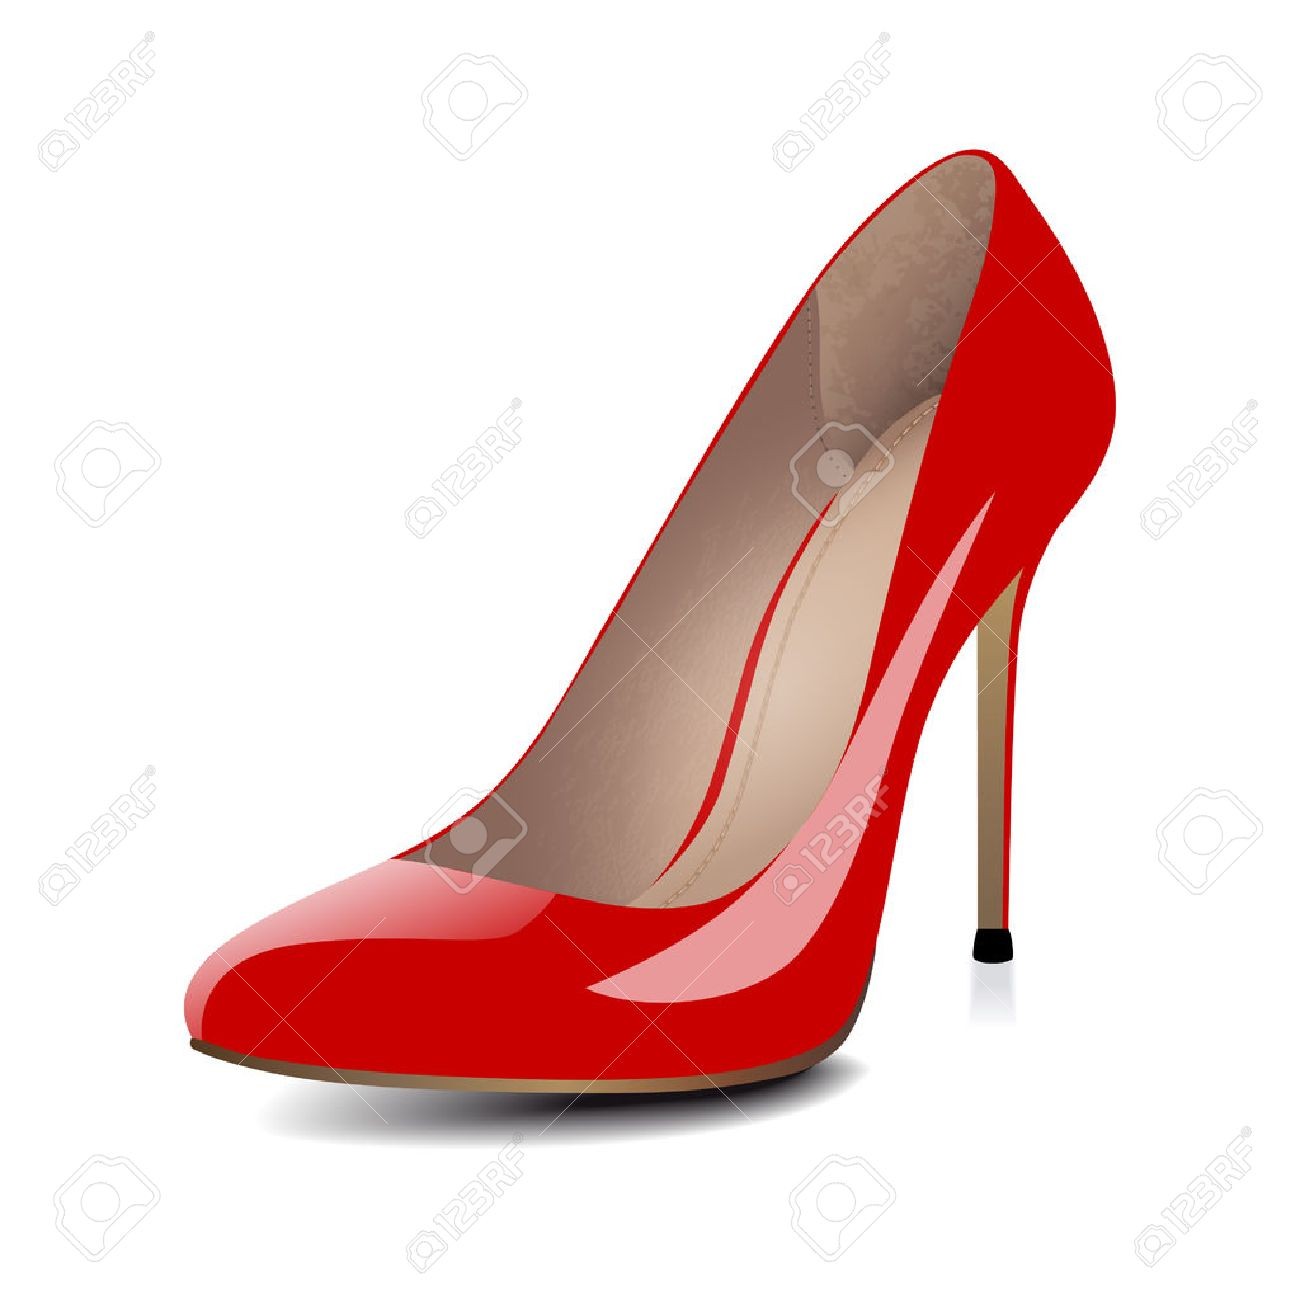 High Heels Red Shoes Isolated On White Background. Vector ...